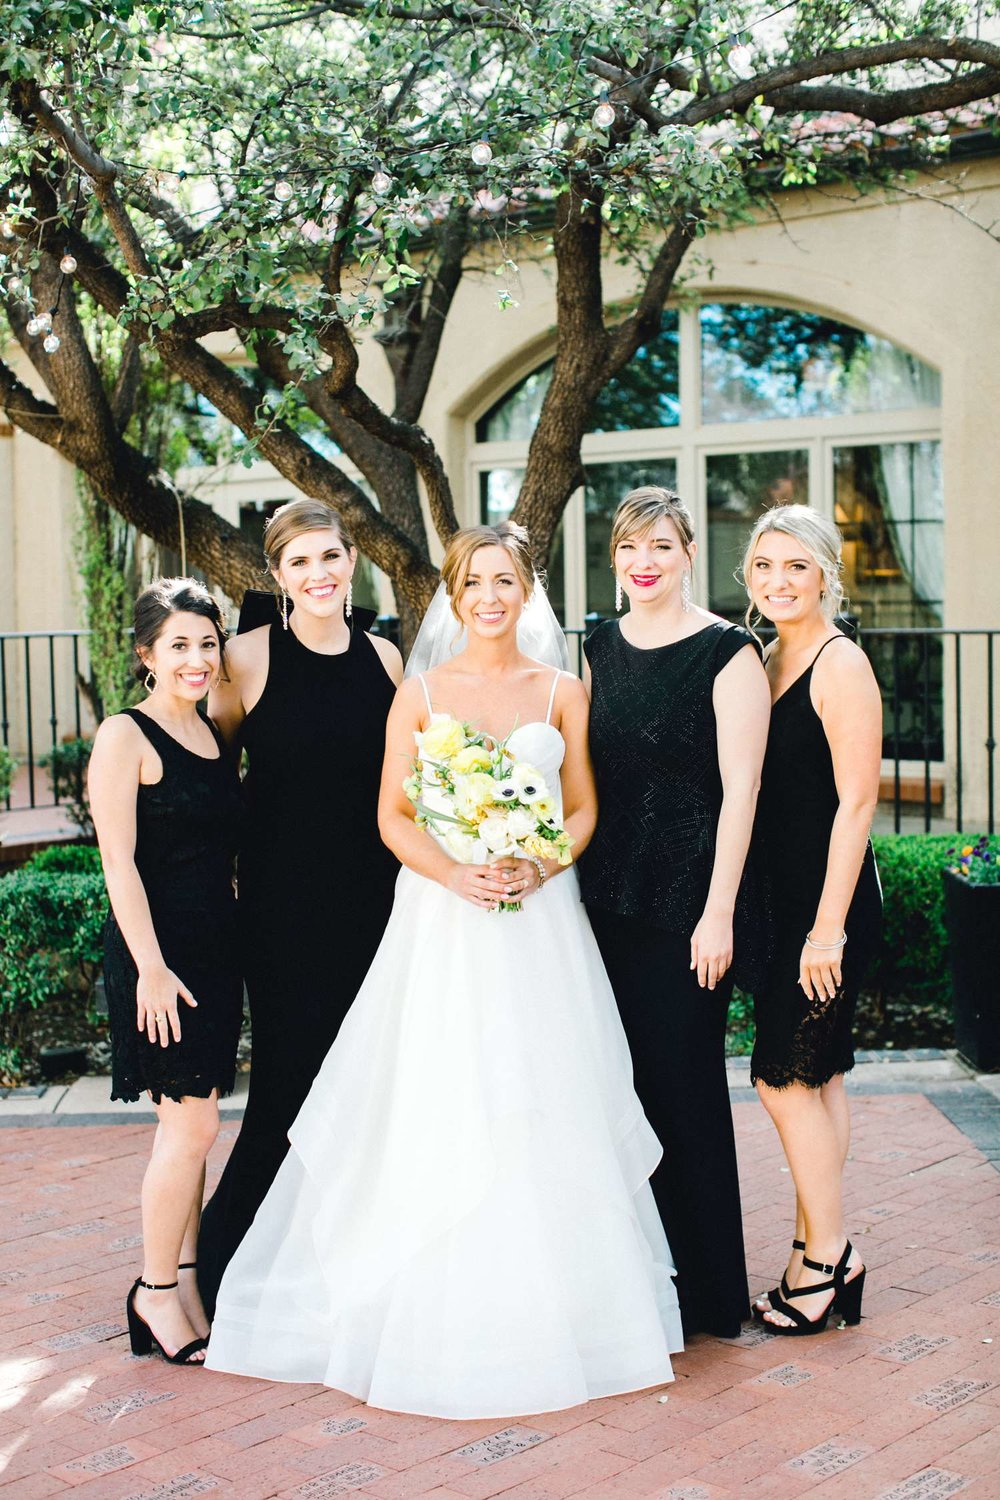 MARLEE+LLOYD+MORGAN+ALLEEJ+TEXAS+TECH+MERKET+ALUMNI+WEDDINGS+LUBBOCK+WEST+TABLE+CLASSIC+SPAIN_0120.jpg